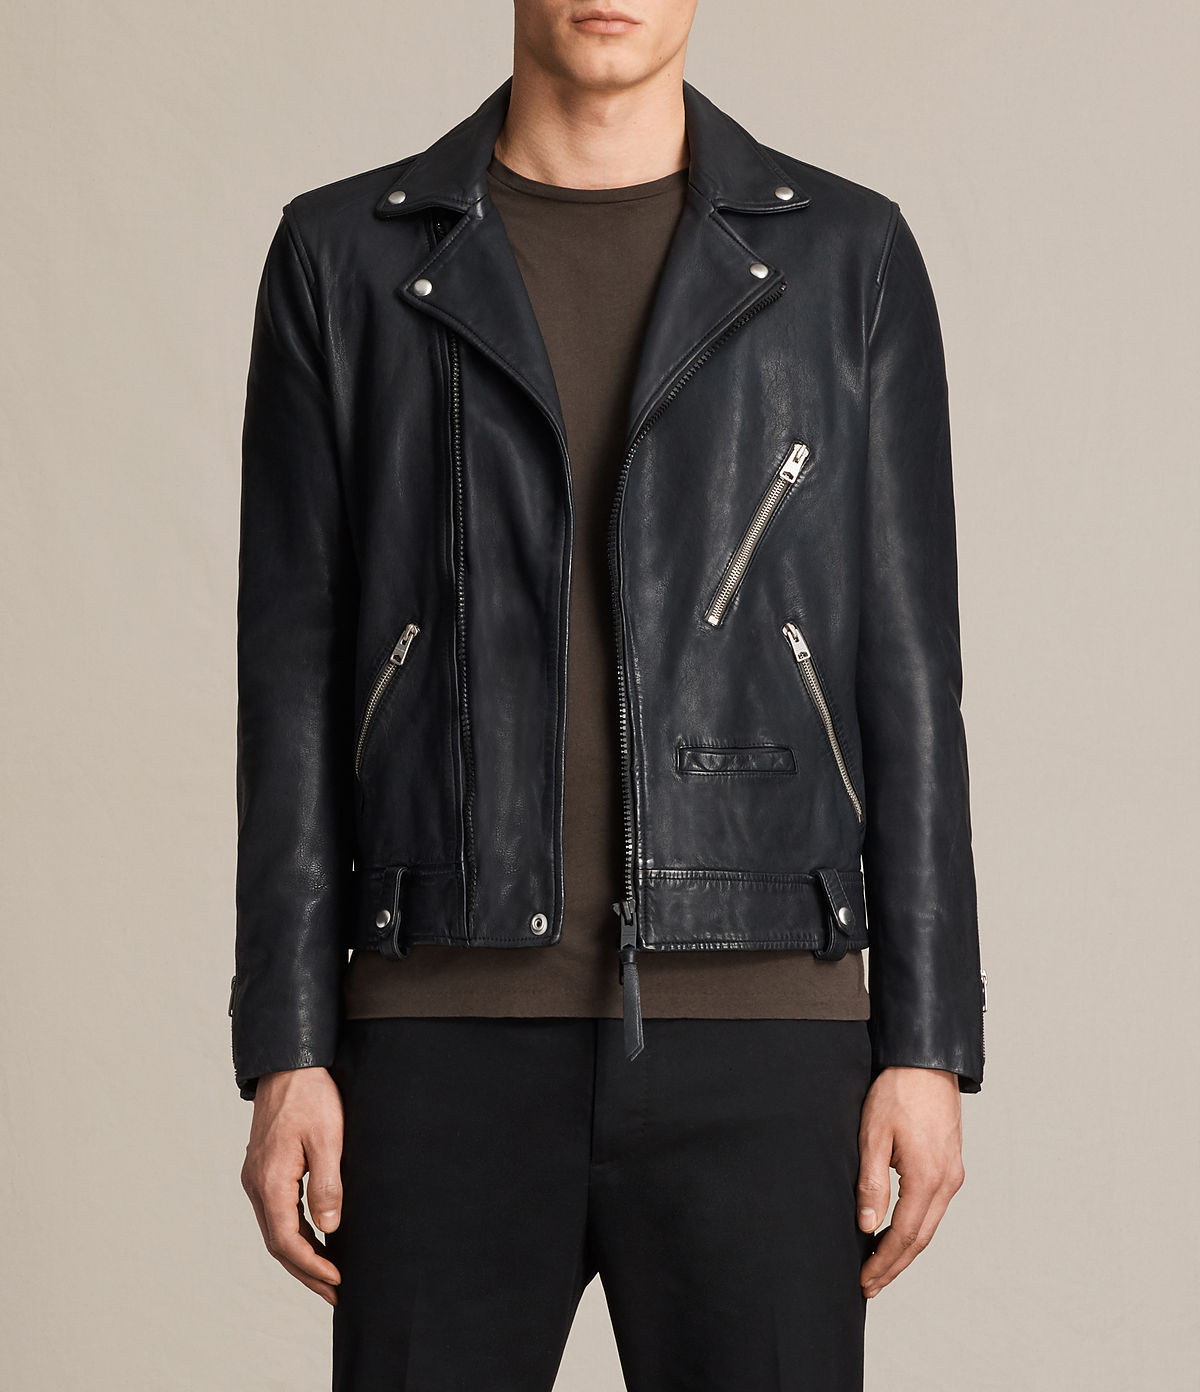 ALLSAINTS US: Leather jackets for men, shop now.